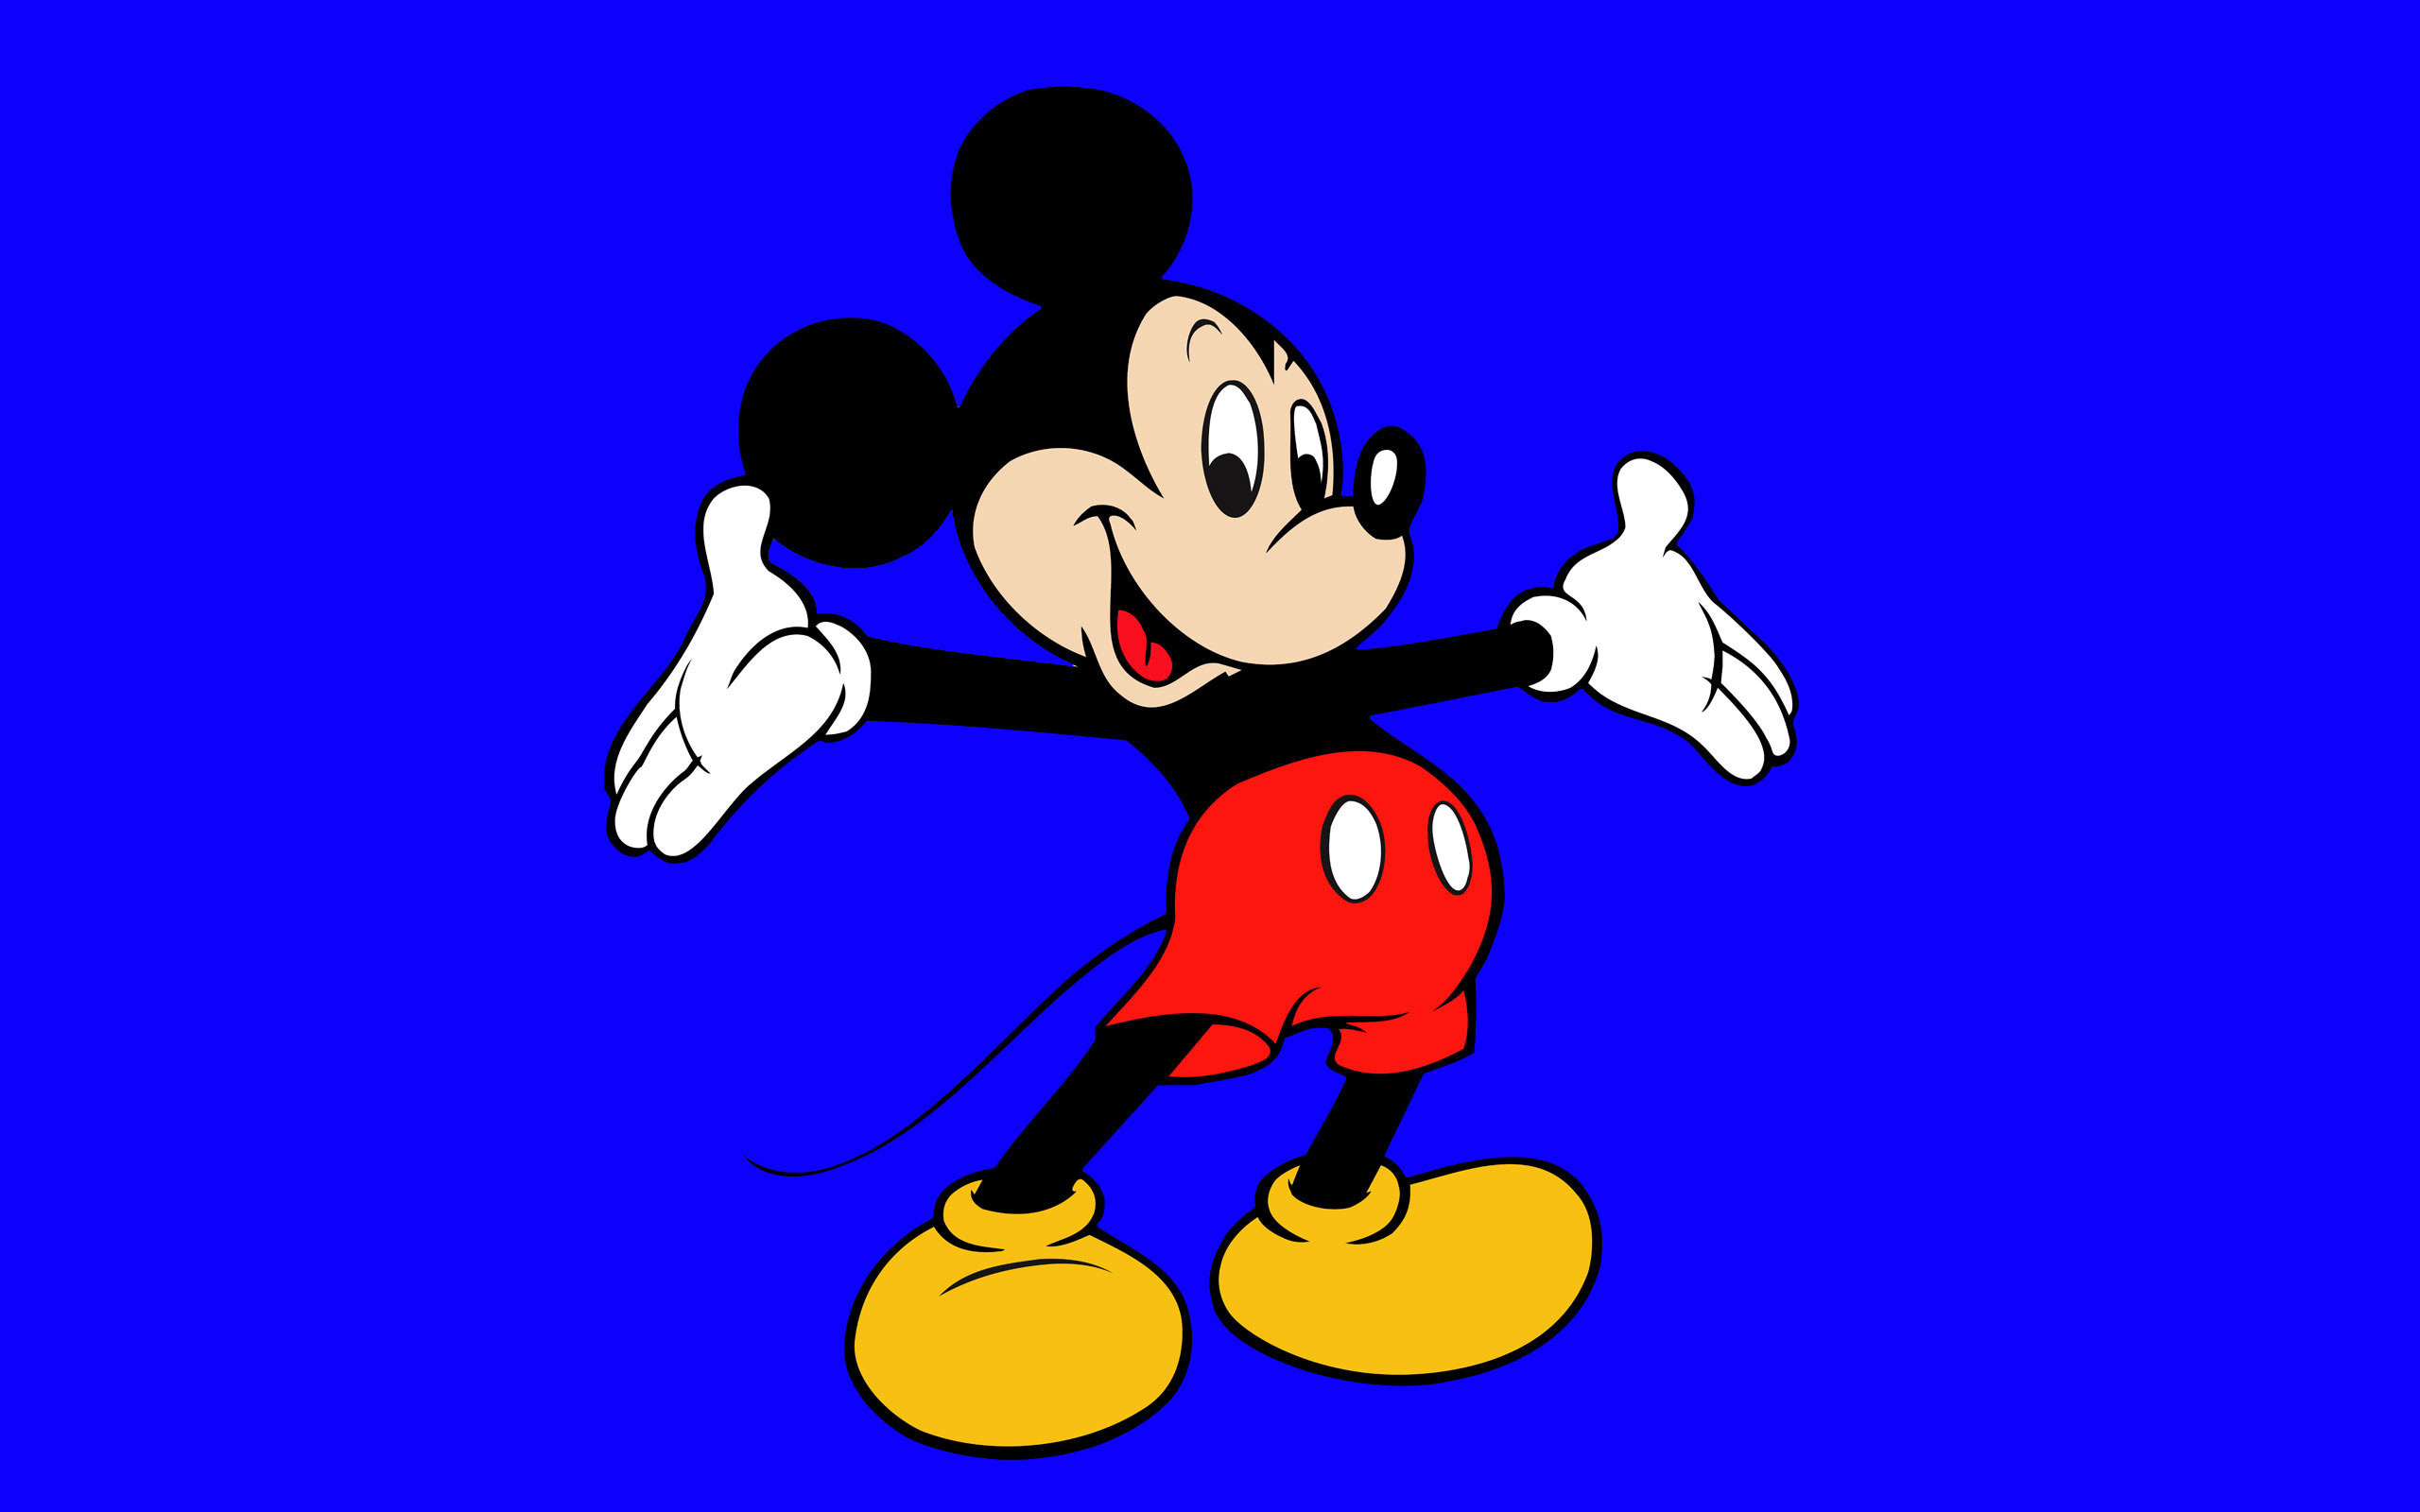 Cartoons Wallpapers   Mickey Mouse   Blue 2560x1600 wallpaper 2560x1600